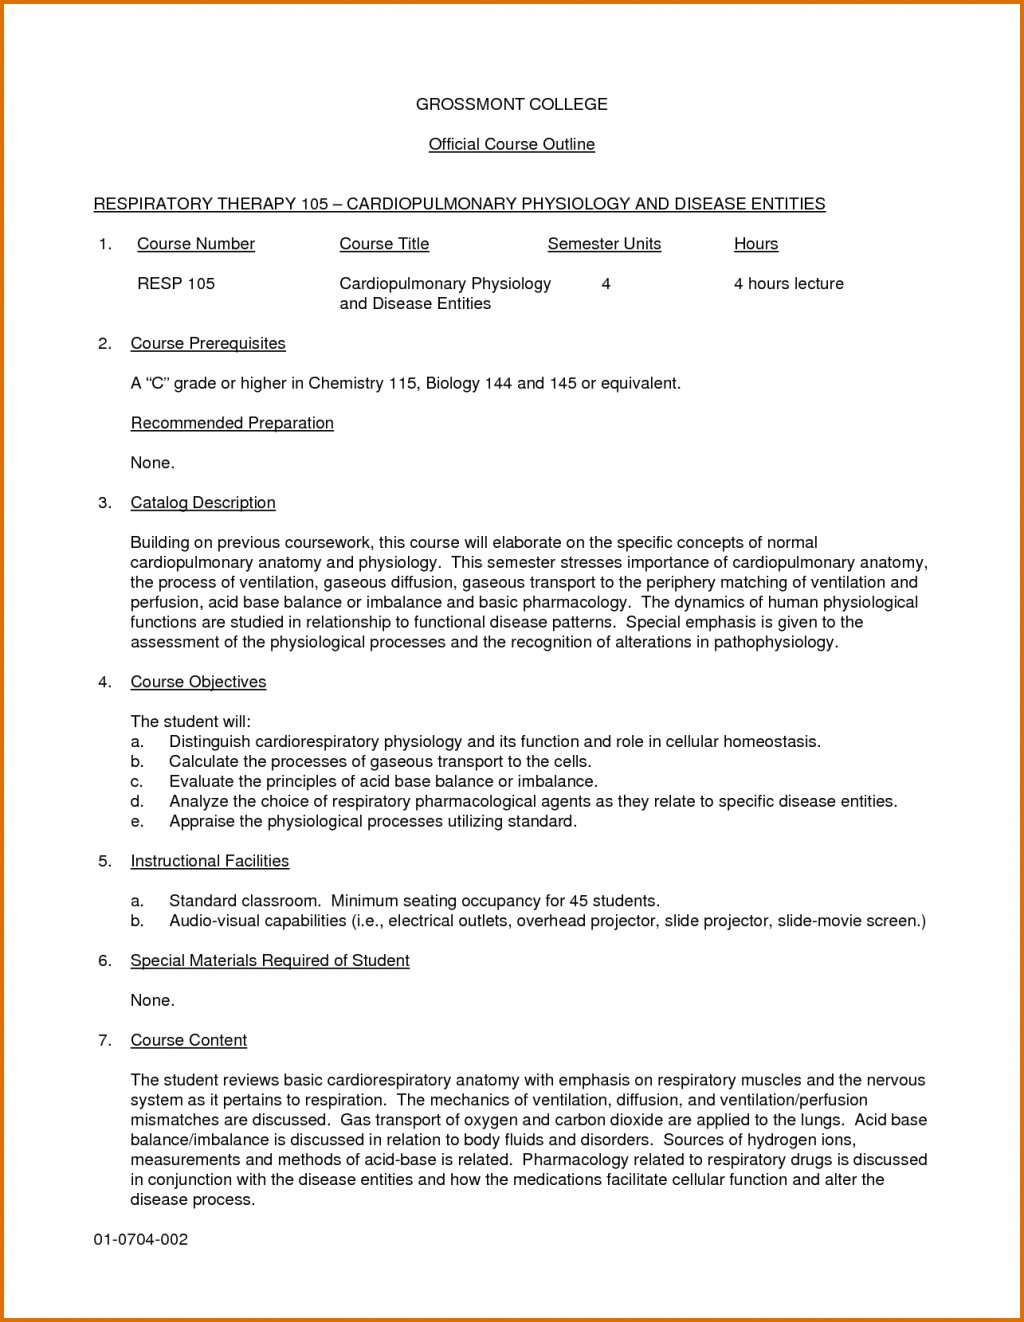 008 Research Paper Outline Template Staggering Biology Writing How To Write A Scientific Conclusion Large